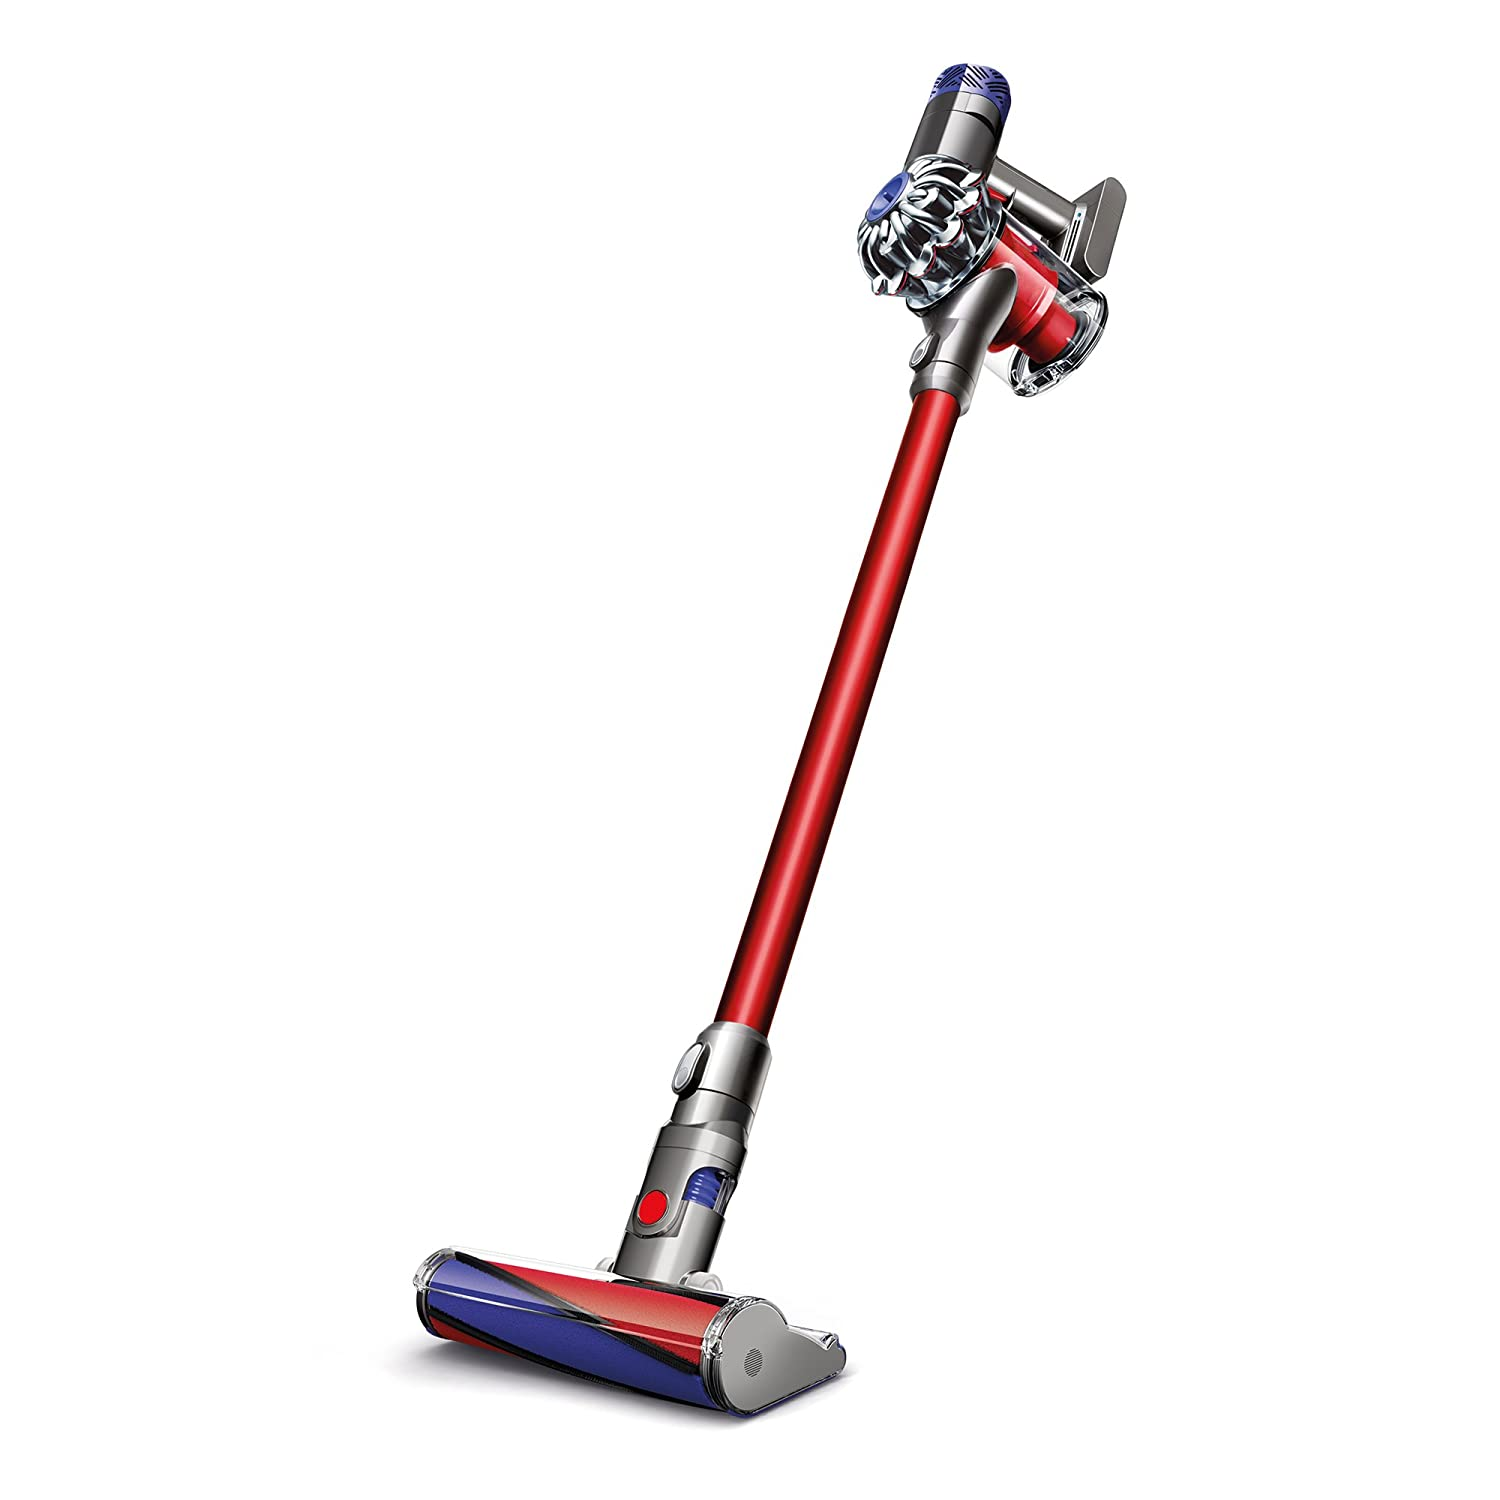 Dyson V6 Absolute Cord-free Vacuum Black Friday Deals 2020